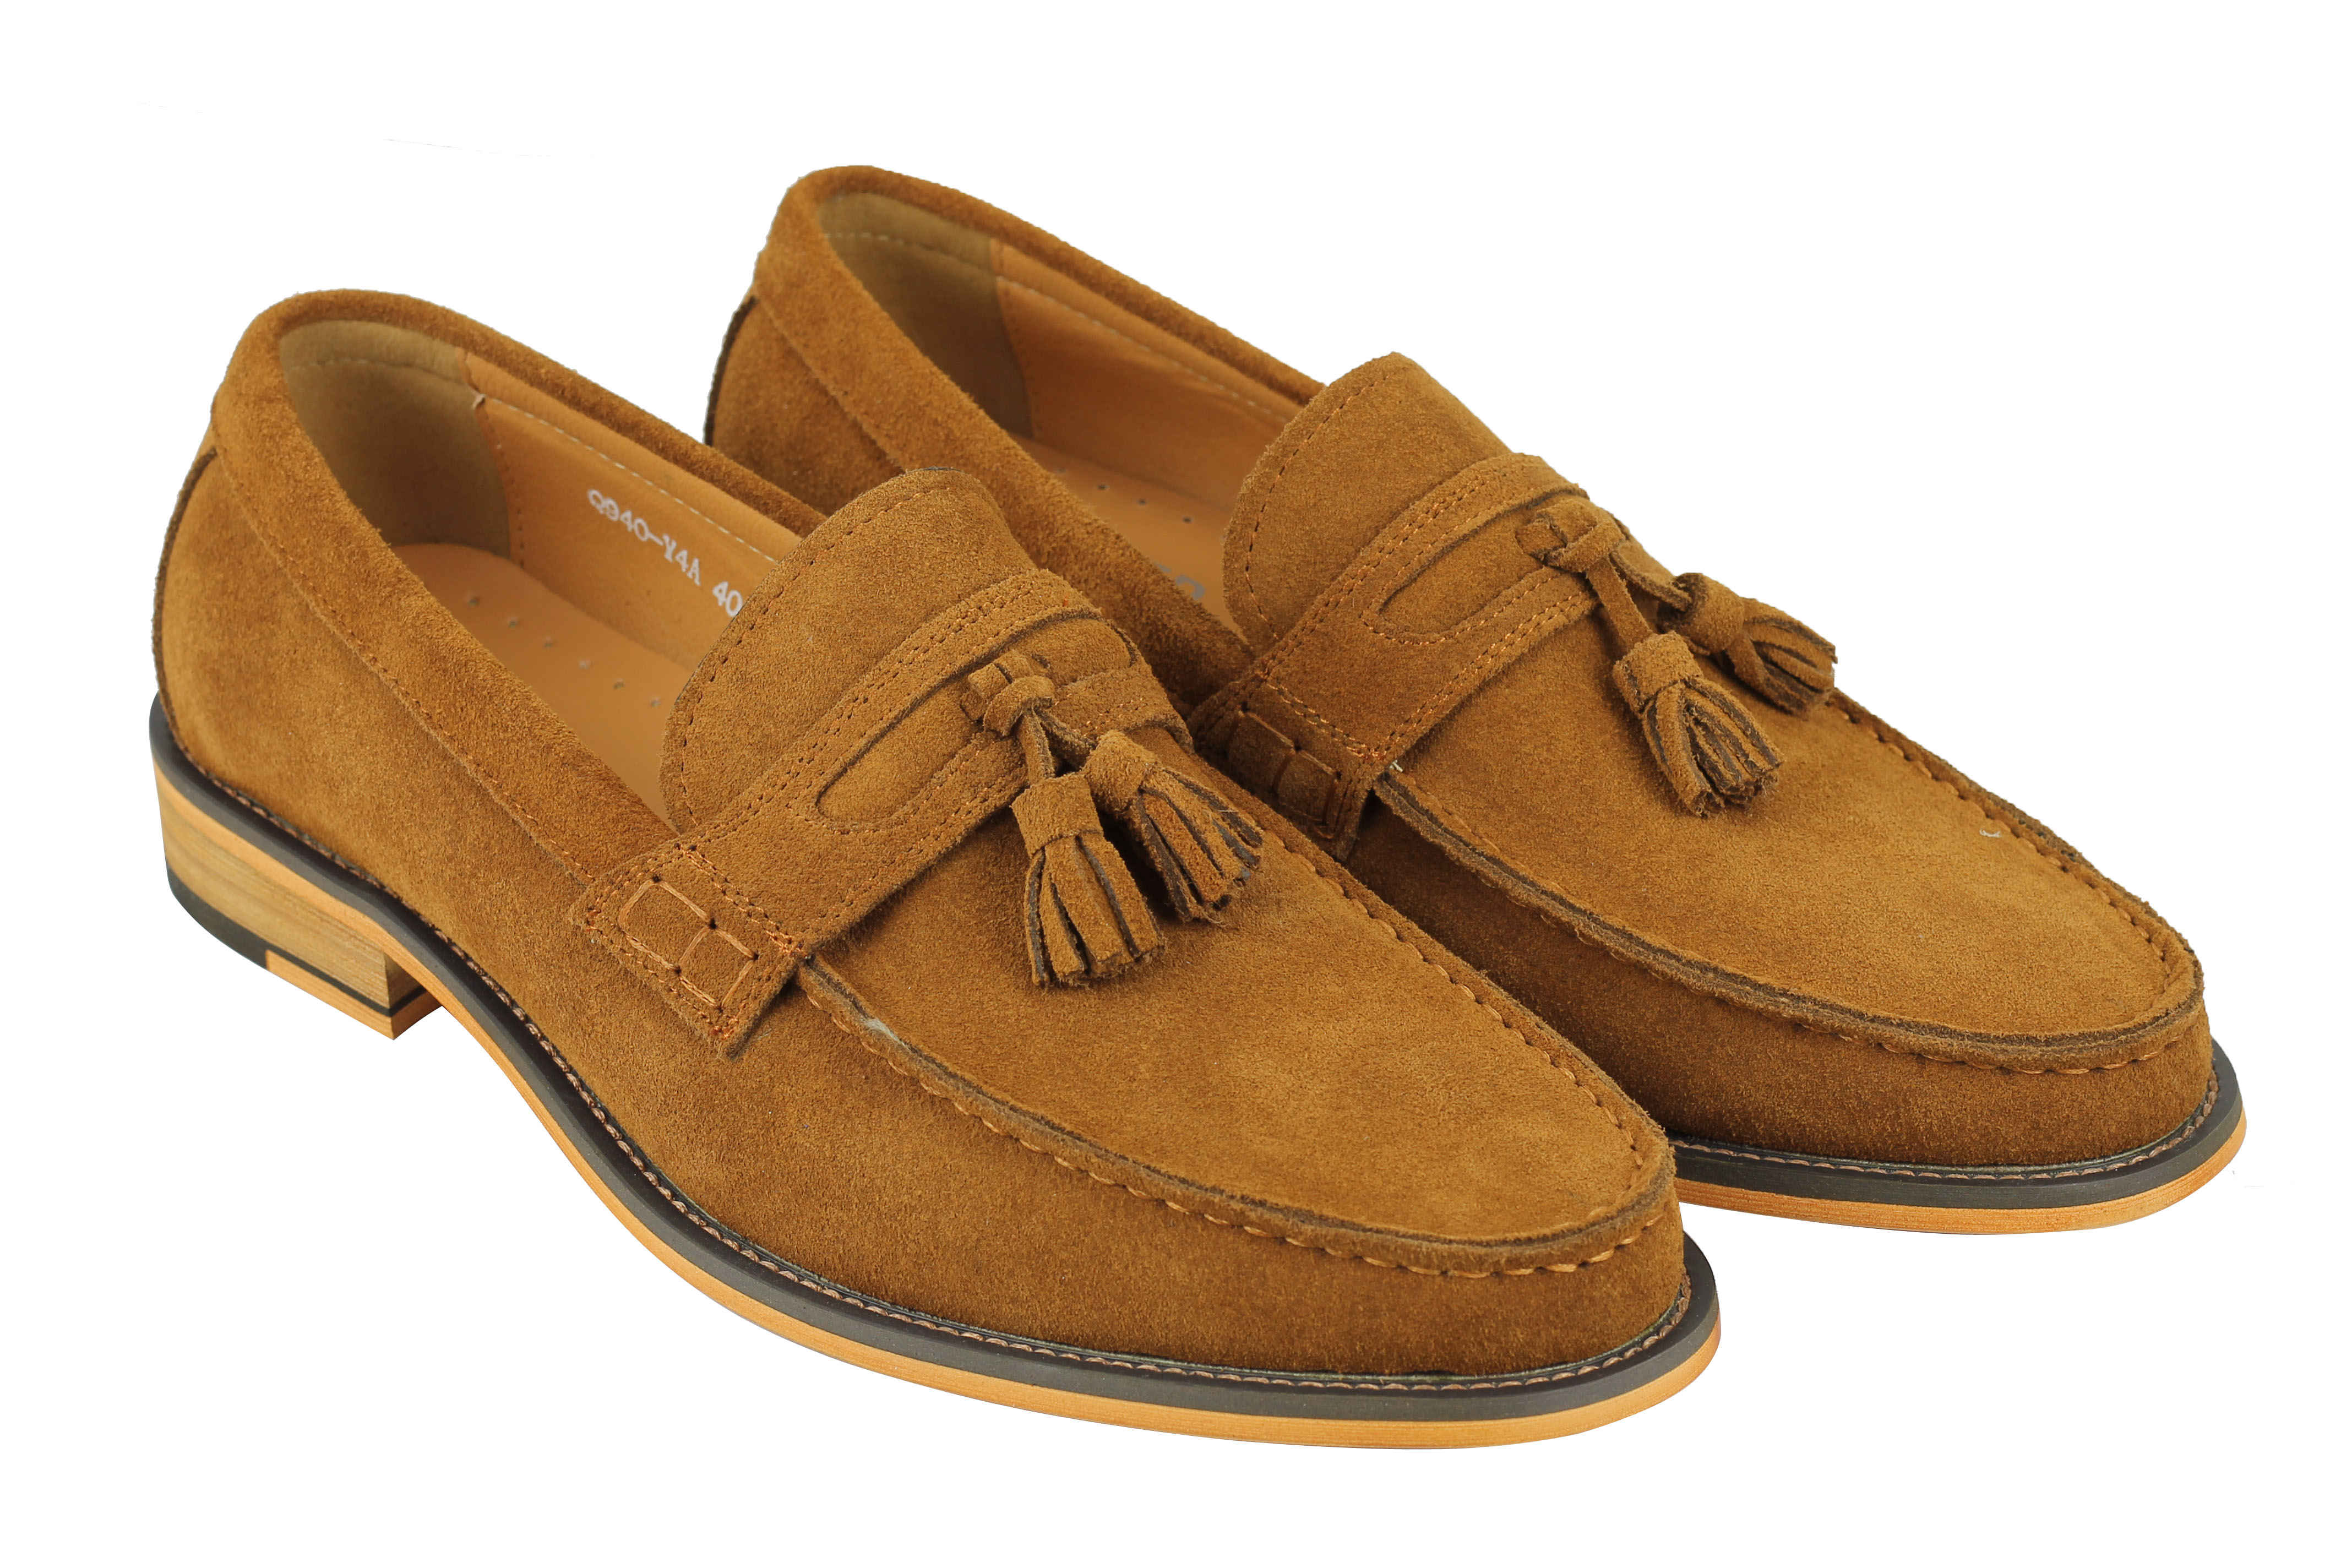 Mens Retro 100% Real Suede Leather Penny Loafers Vintage ...